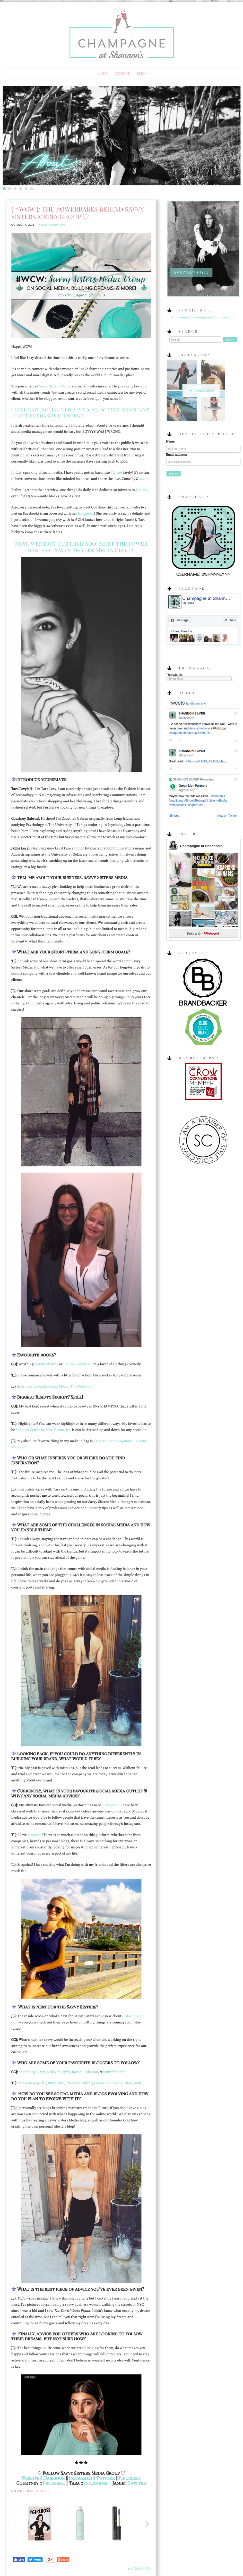 screencapture-champagneatshannons-wcw-savvy-sisters-media-group-1475698279552.png